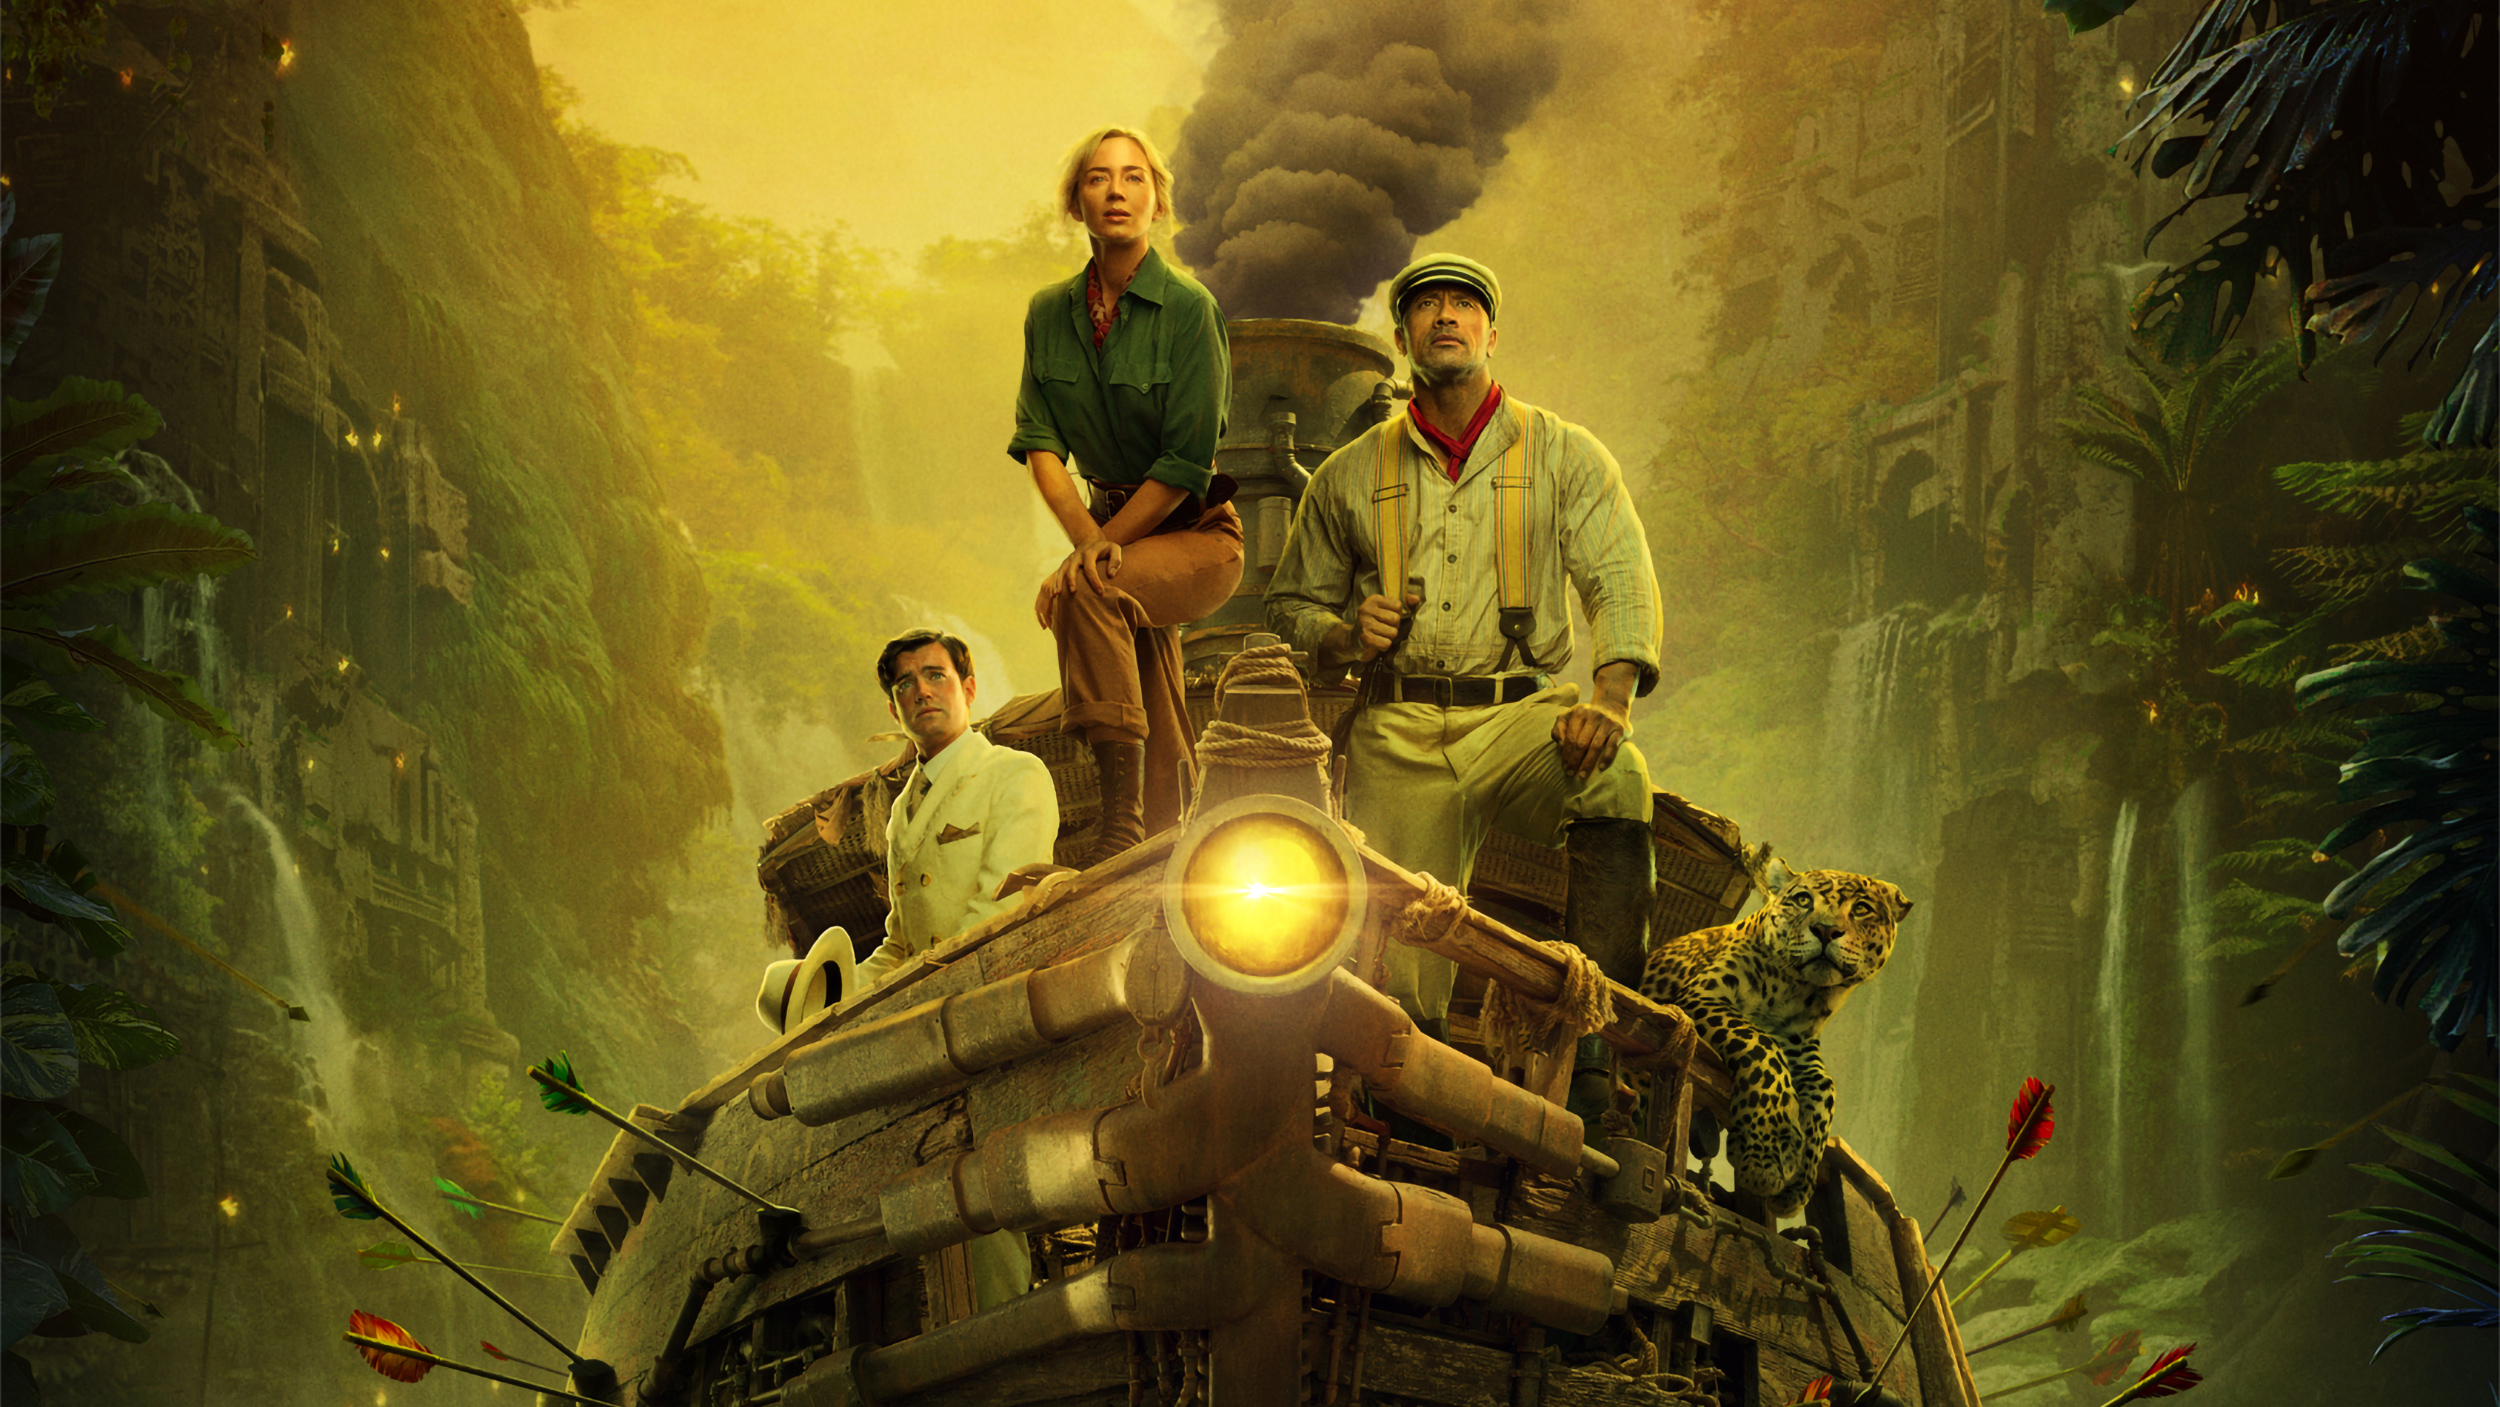 Jungle Cruise 2020 Movie Hd Movies 4k Wallpapers Images Backgrounds Photos And Pictures